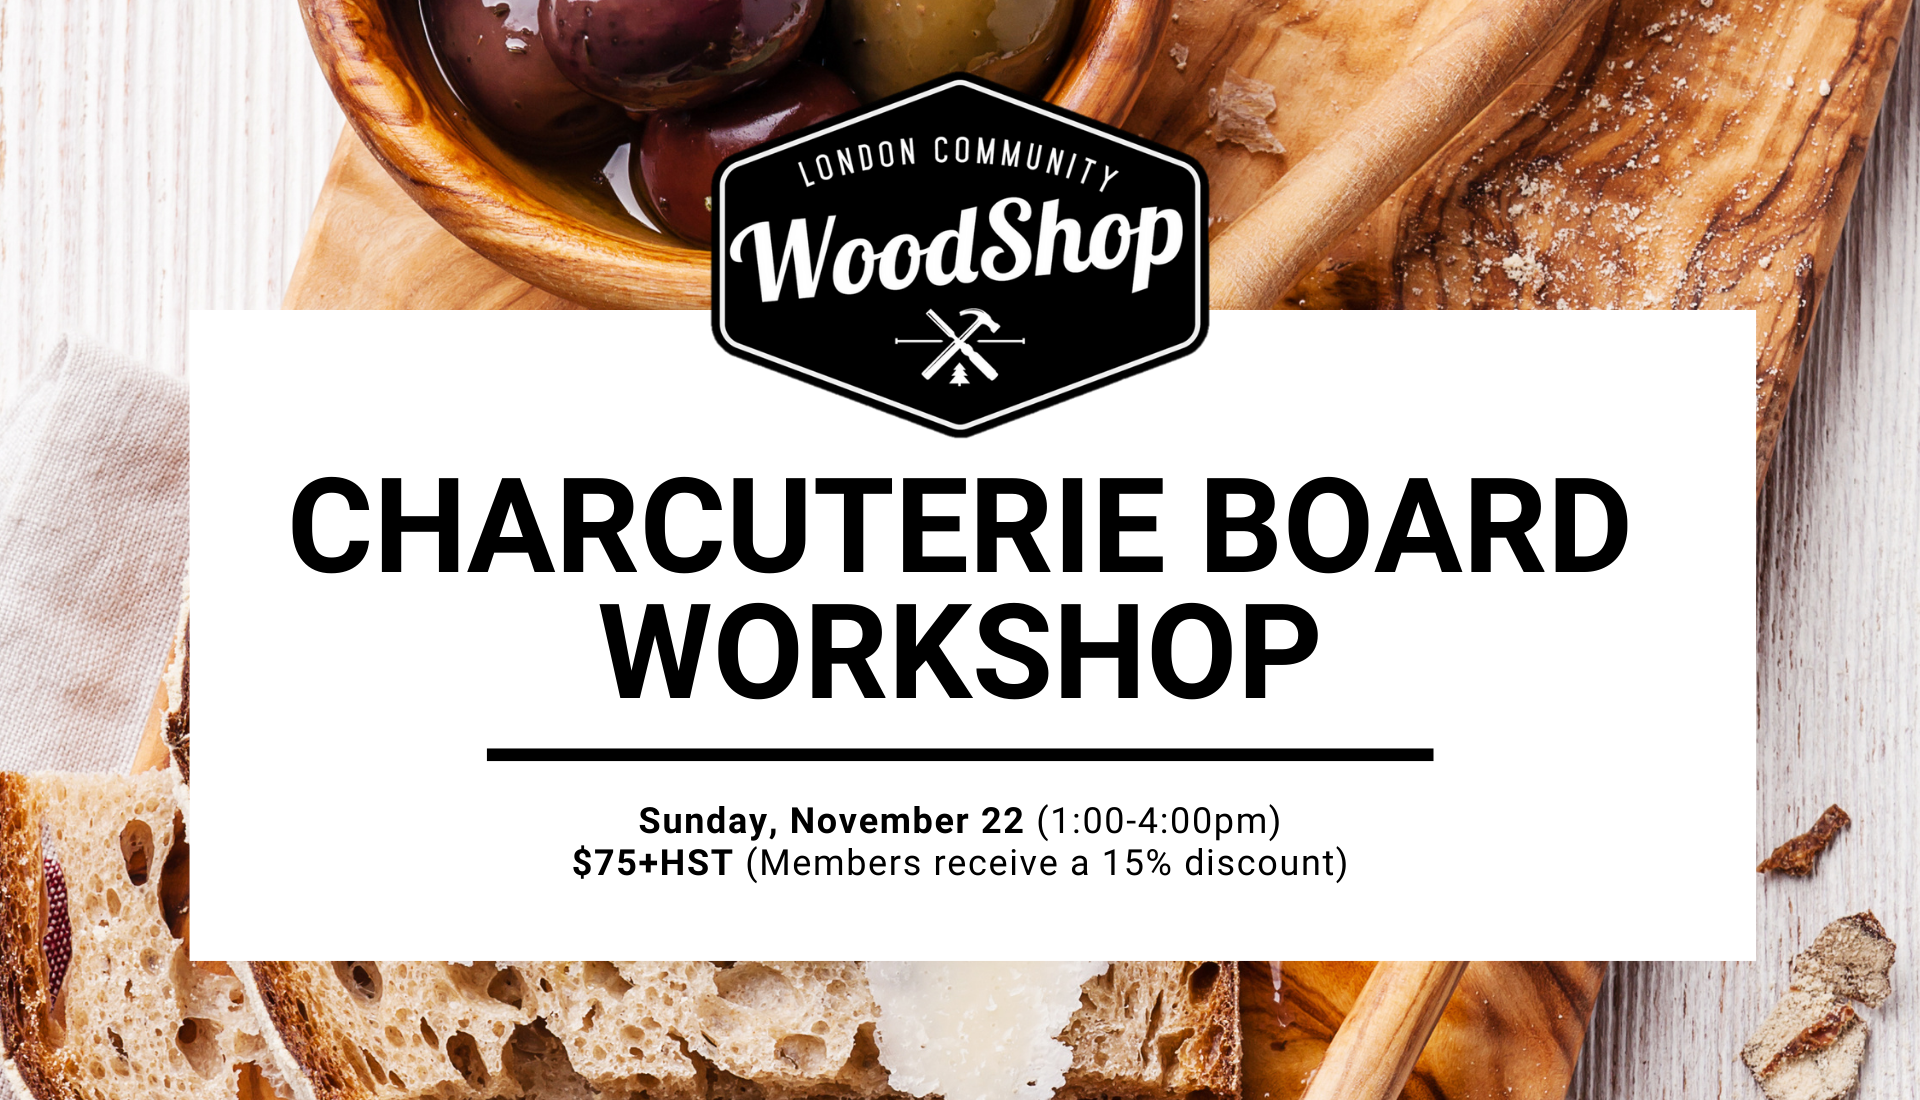 Charcuterie Board Workshop - November 22, 2020